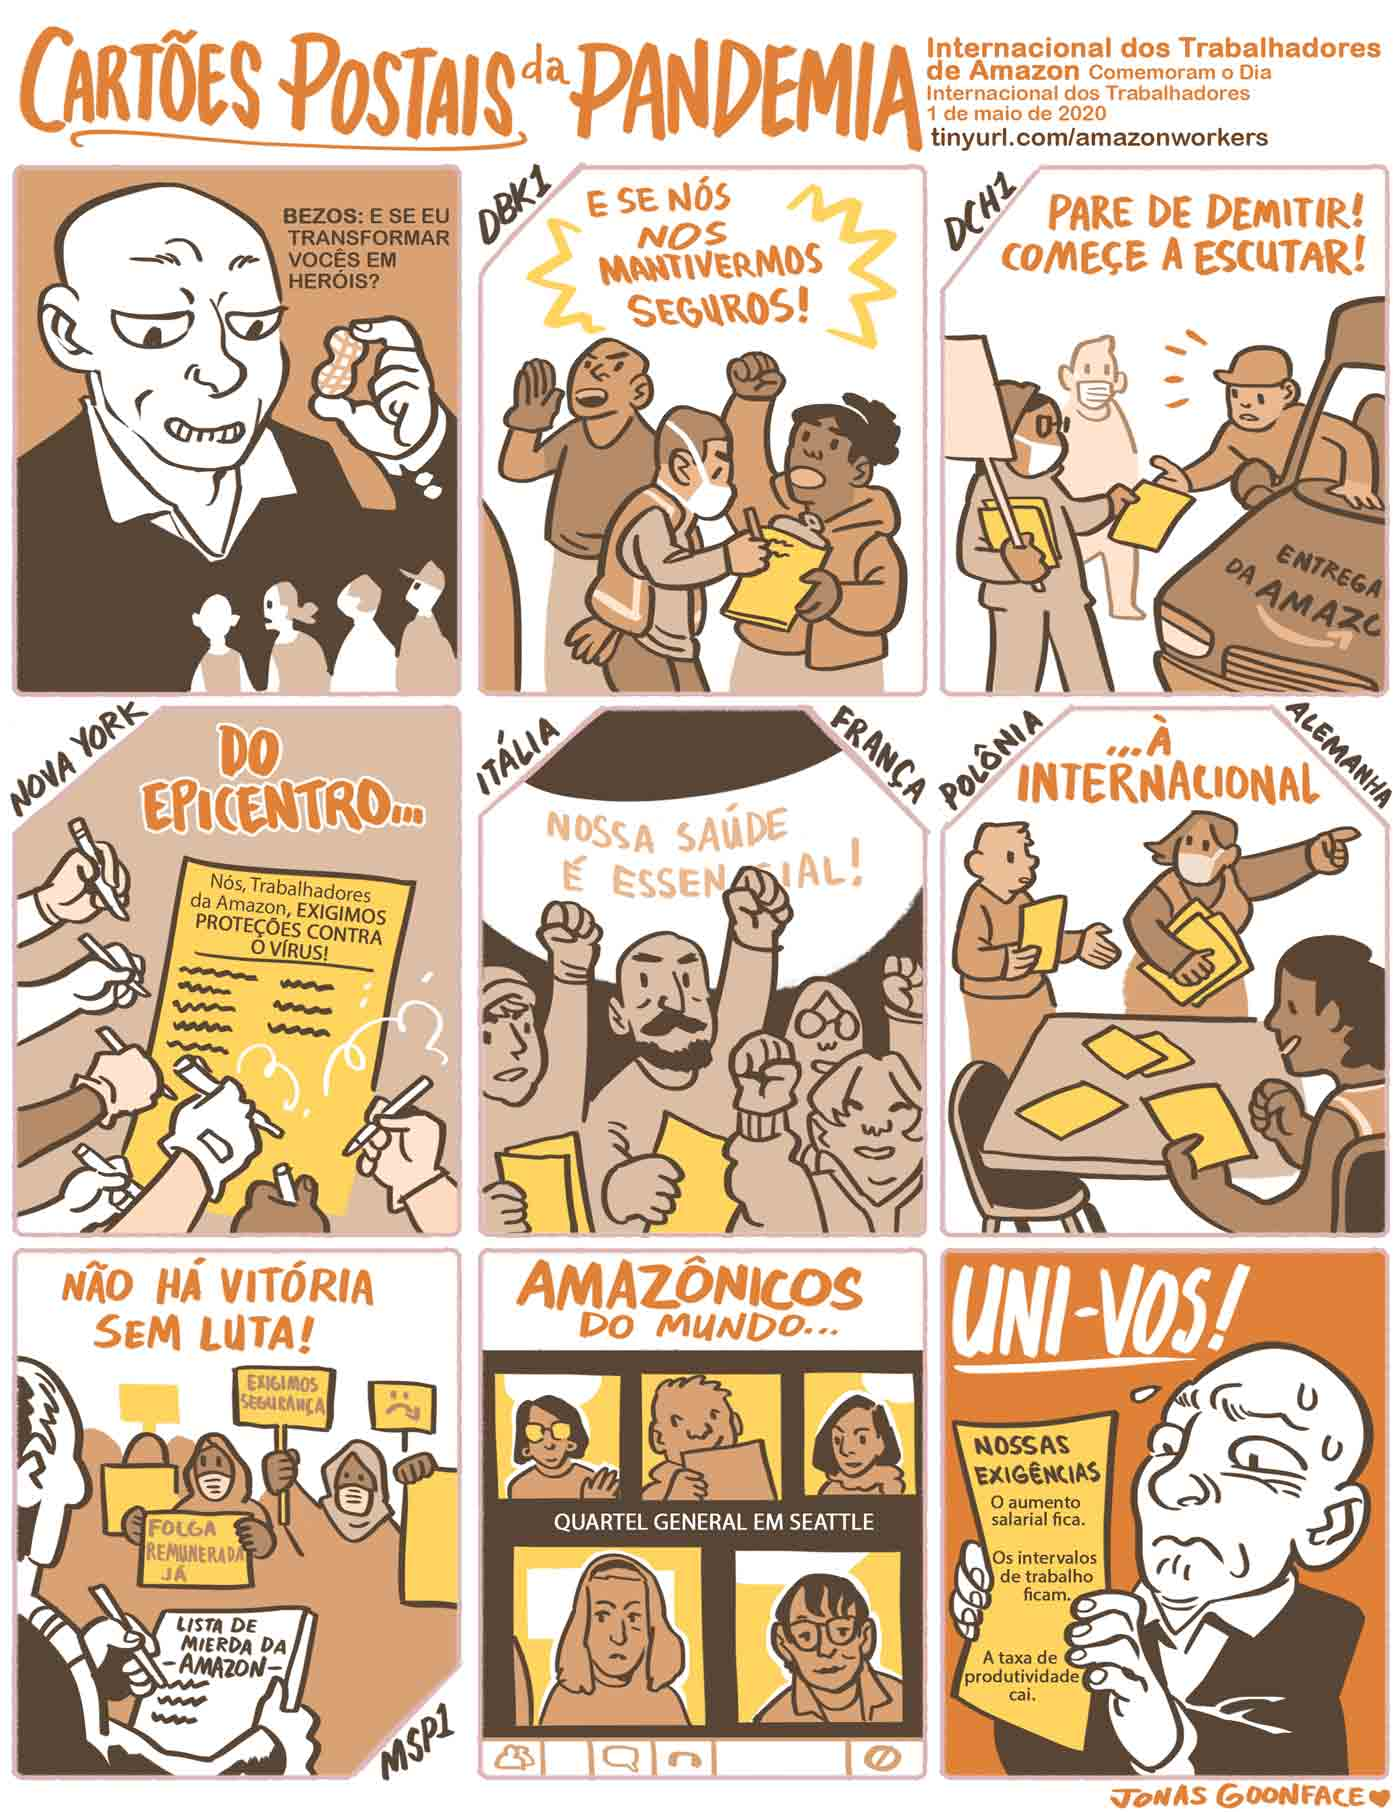 """Comic in Portuguese entitled """"Postcards from the Pandemic"""" for Amazon Workers International. Jeff Bezos offers workers the 'peanut' of calling the workers heroes. The workers counter with demands for safety. Amazonians of the World, Unite!"""